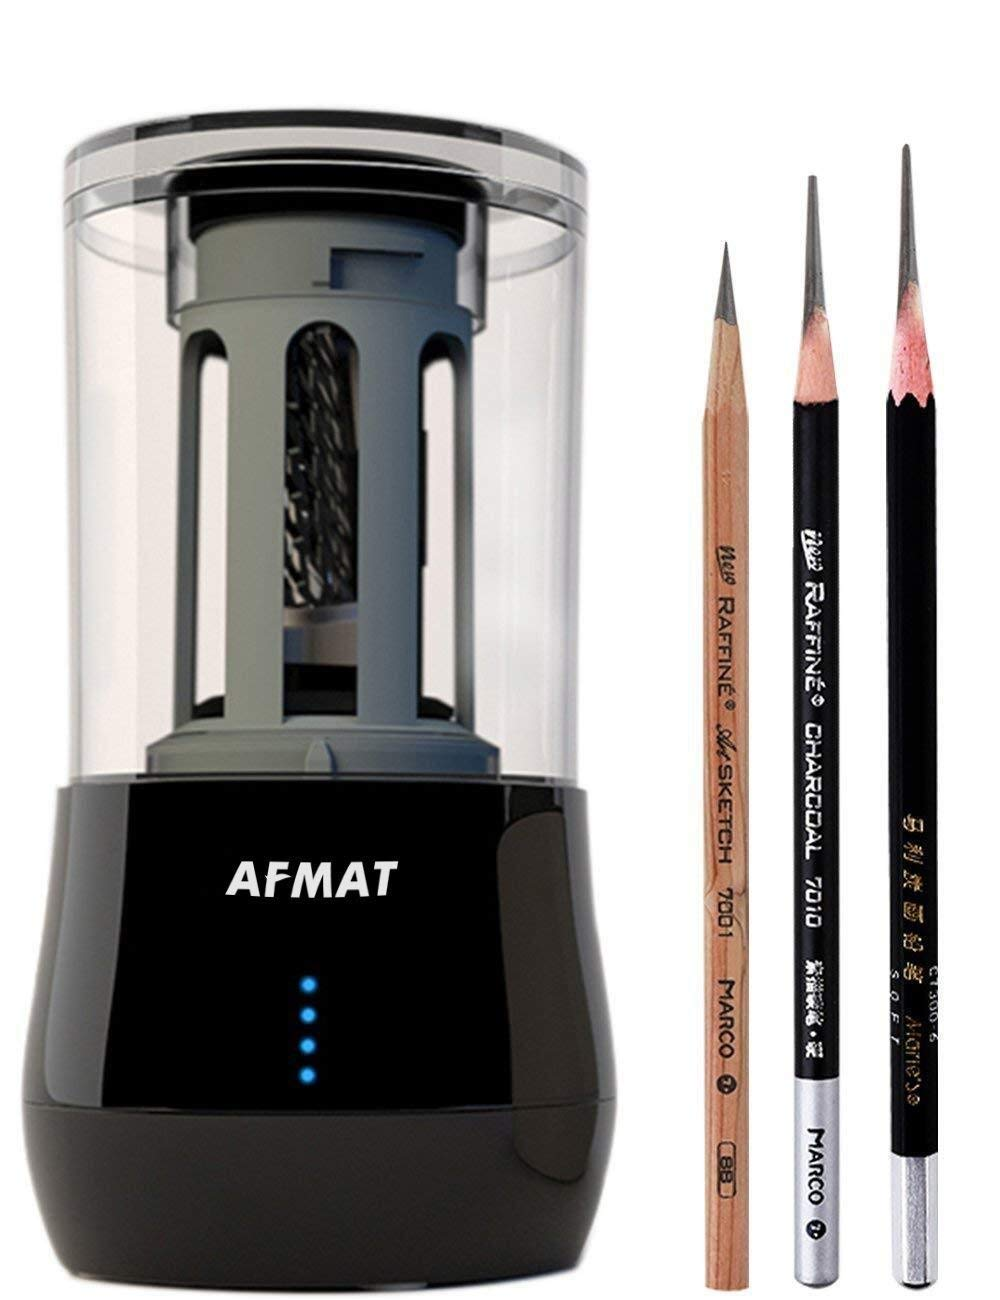 Long Point Pencil Sharpener, Professional Electric Pencil Sharpener, Heavy Duty Art Drawing And Sketching Rechargeable Pencil Sharpener, Artists Supplies for Prismacolor Colored & Soft Carbon Pencils AFMAT